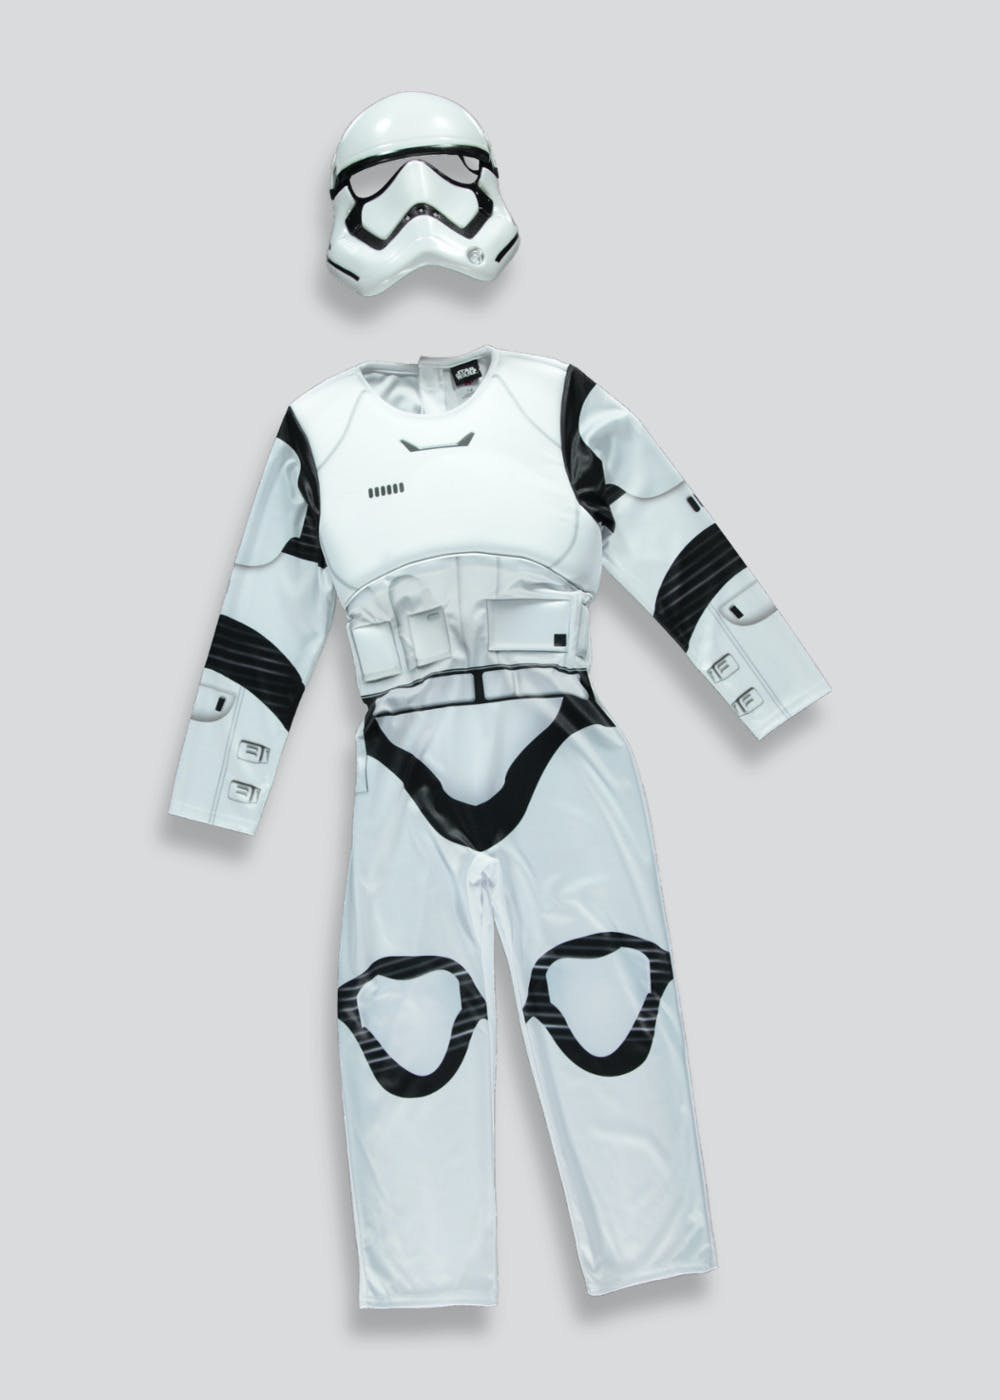 Star wars stormtrooper sleep suit or dress up new 6//7yrs